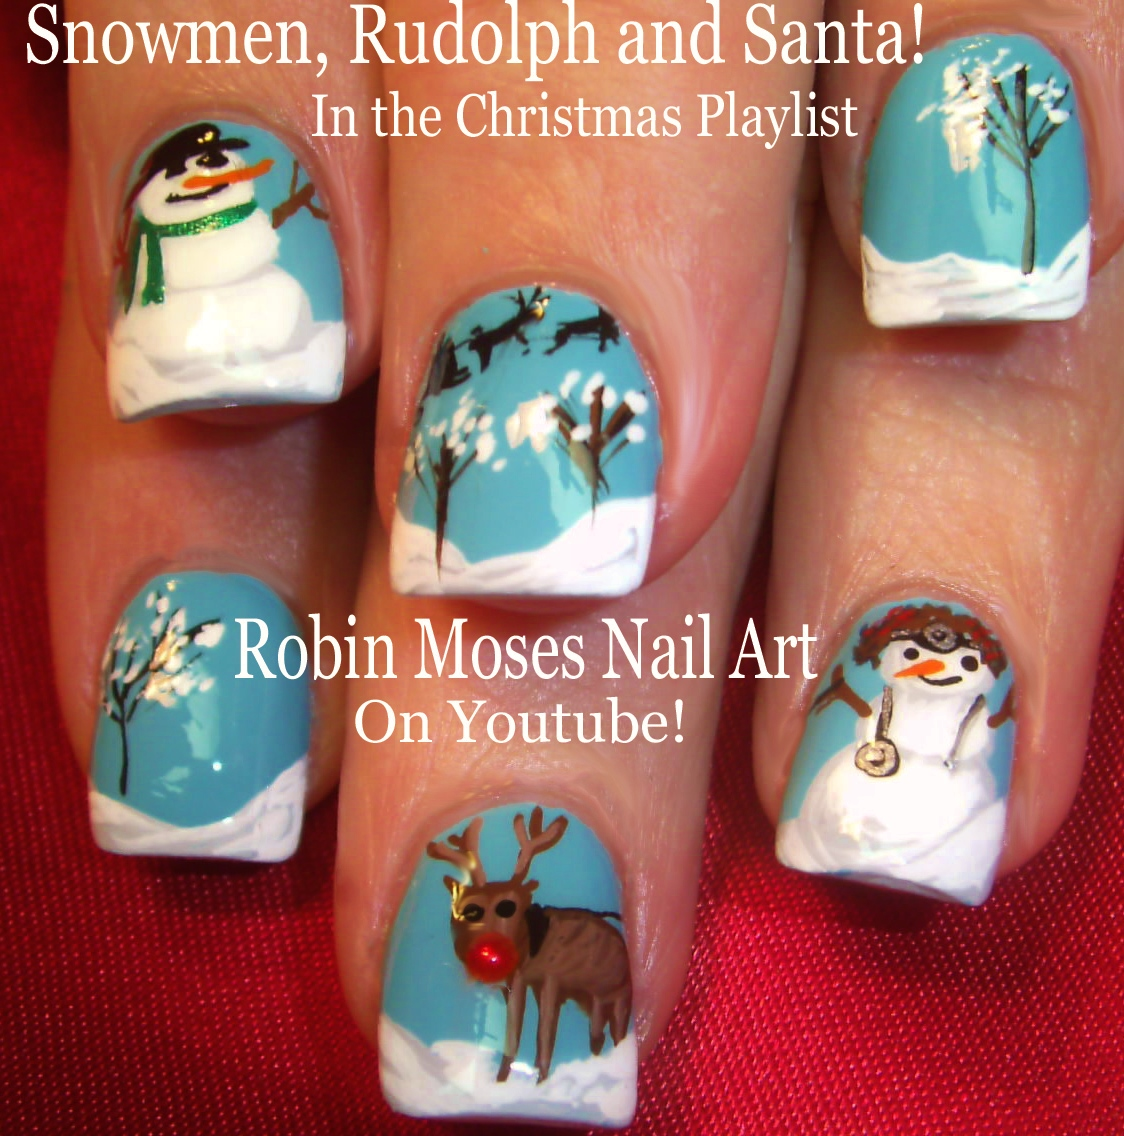 Robin moses nail art more snowman art you can try from my channel in photos below prinsesfo Gallery